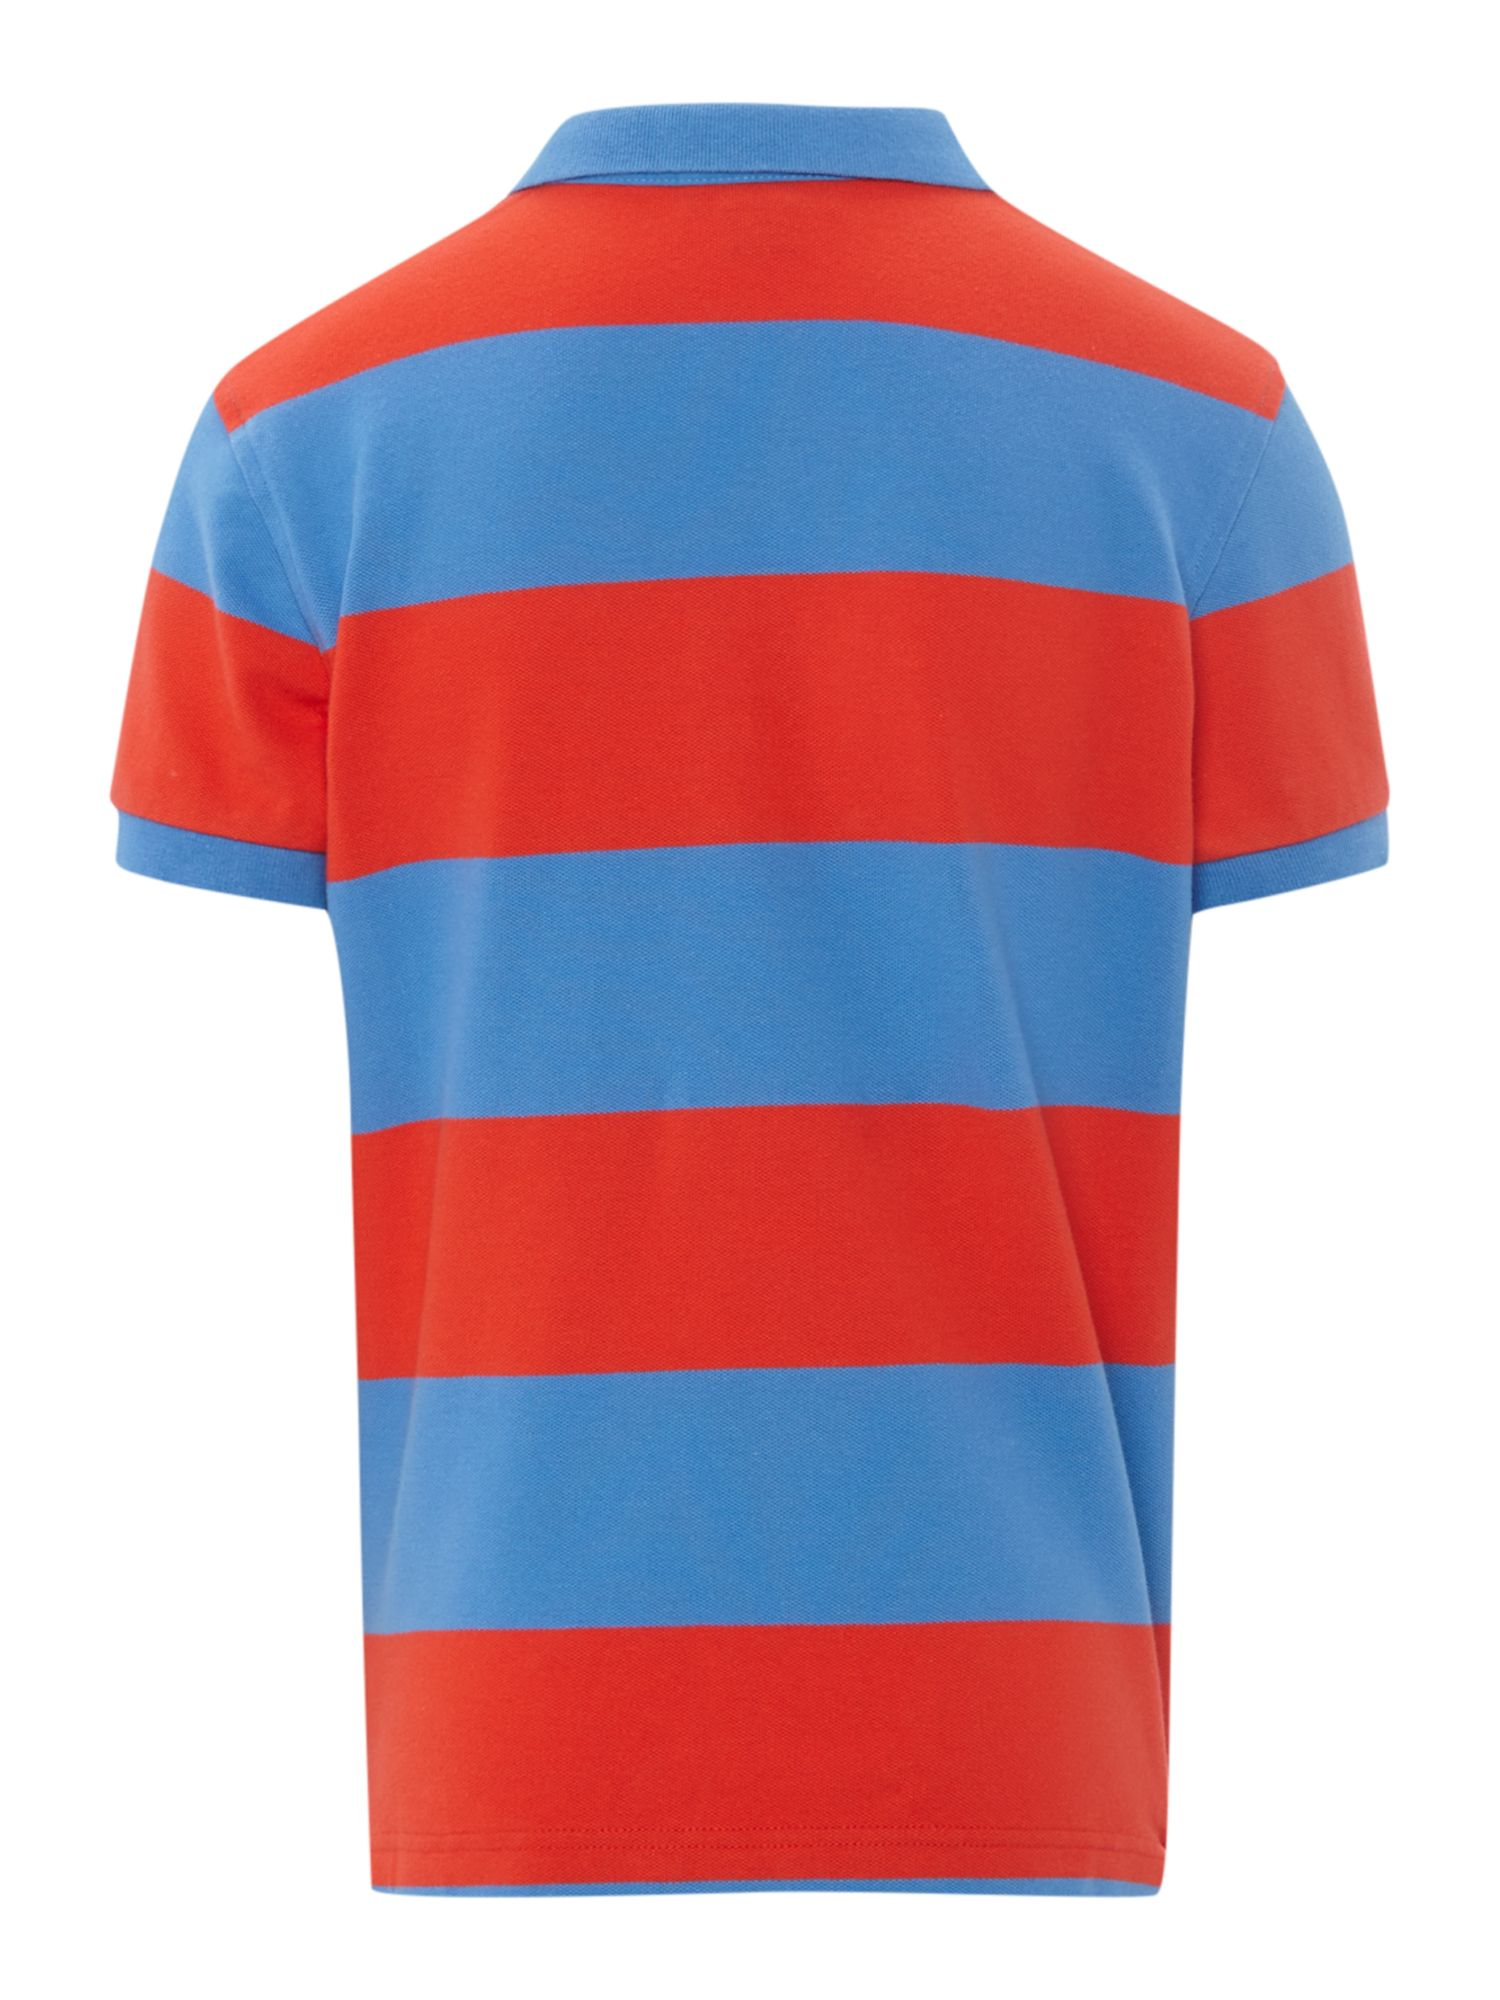 Boys block stripe polo shirt